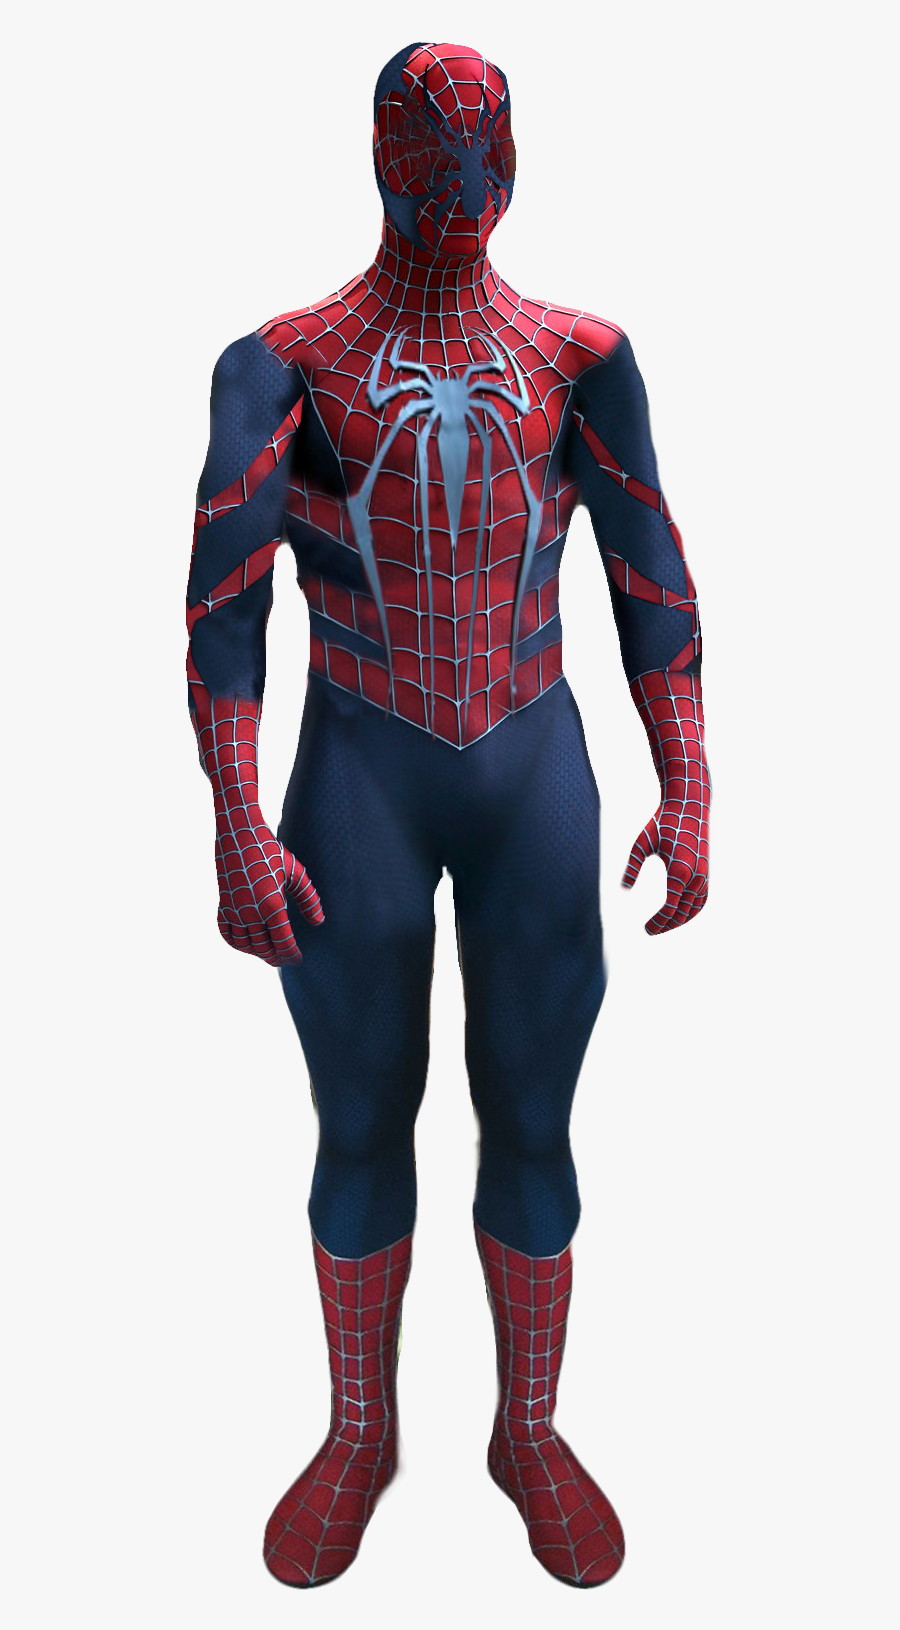 Spider Man Costume Fan Art - Drawing Of The Amazing Spider Man, Transparent Clipart